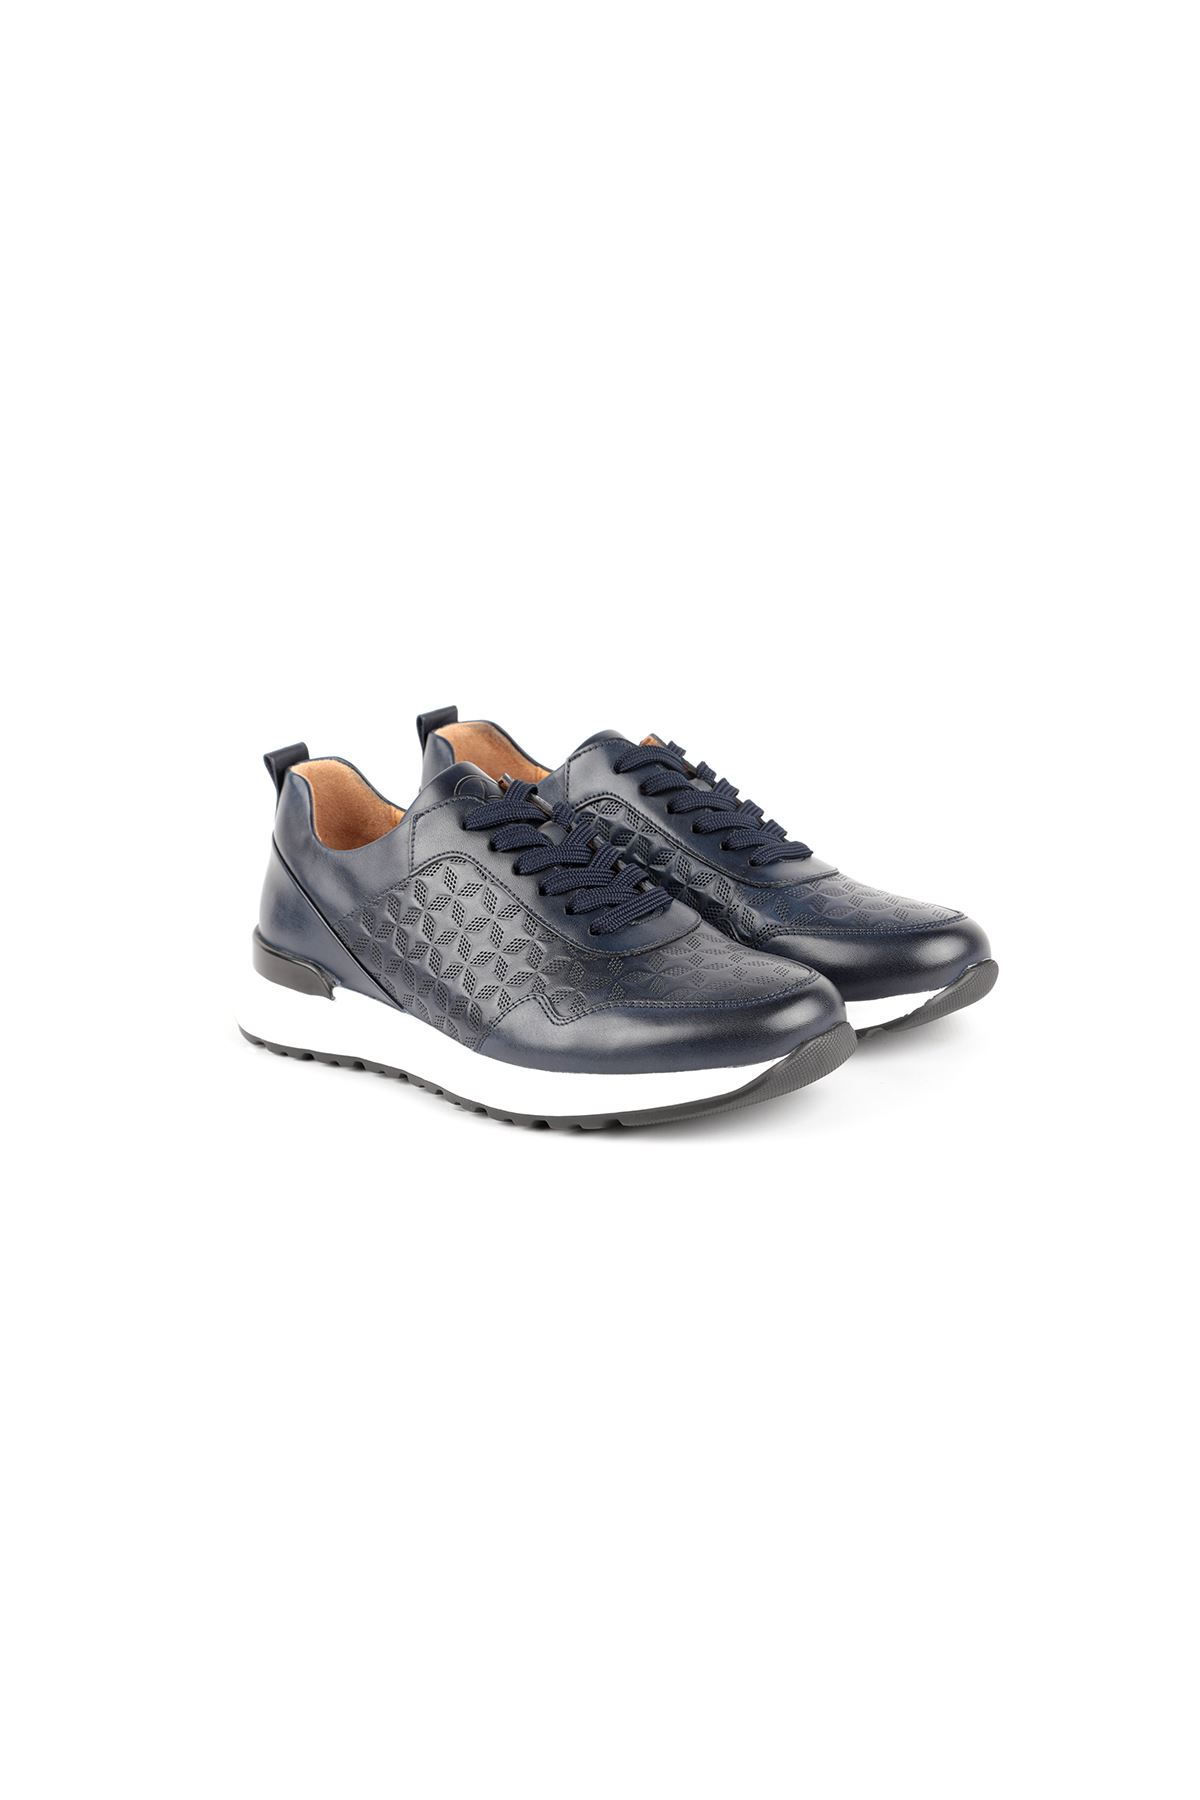 Libero L3752 Navy Blue Sport Men Shoes